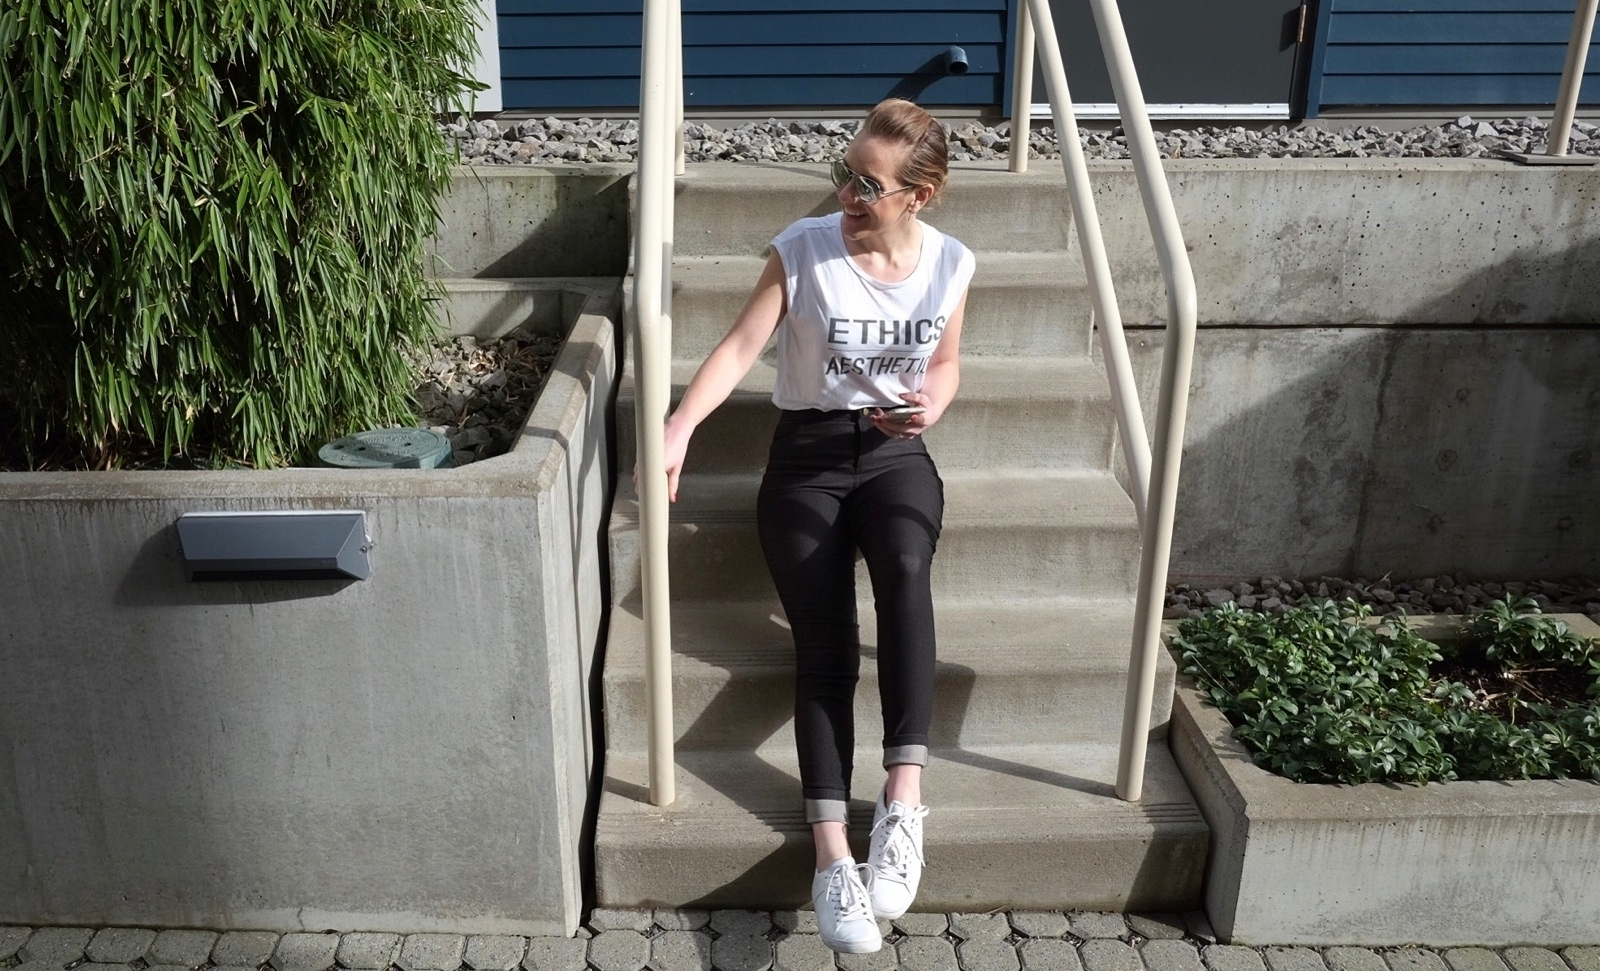 ethical jeans (IMBY)